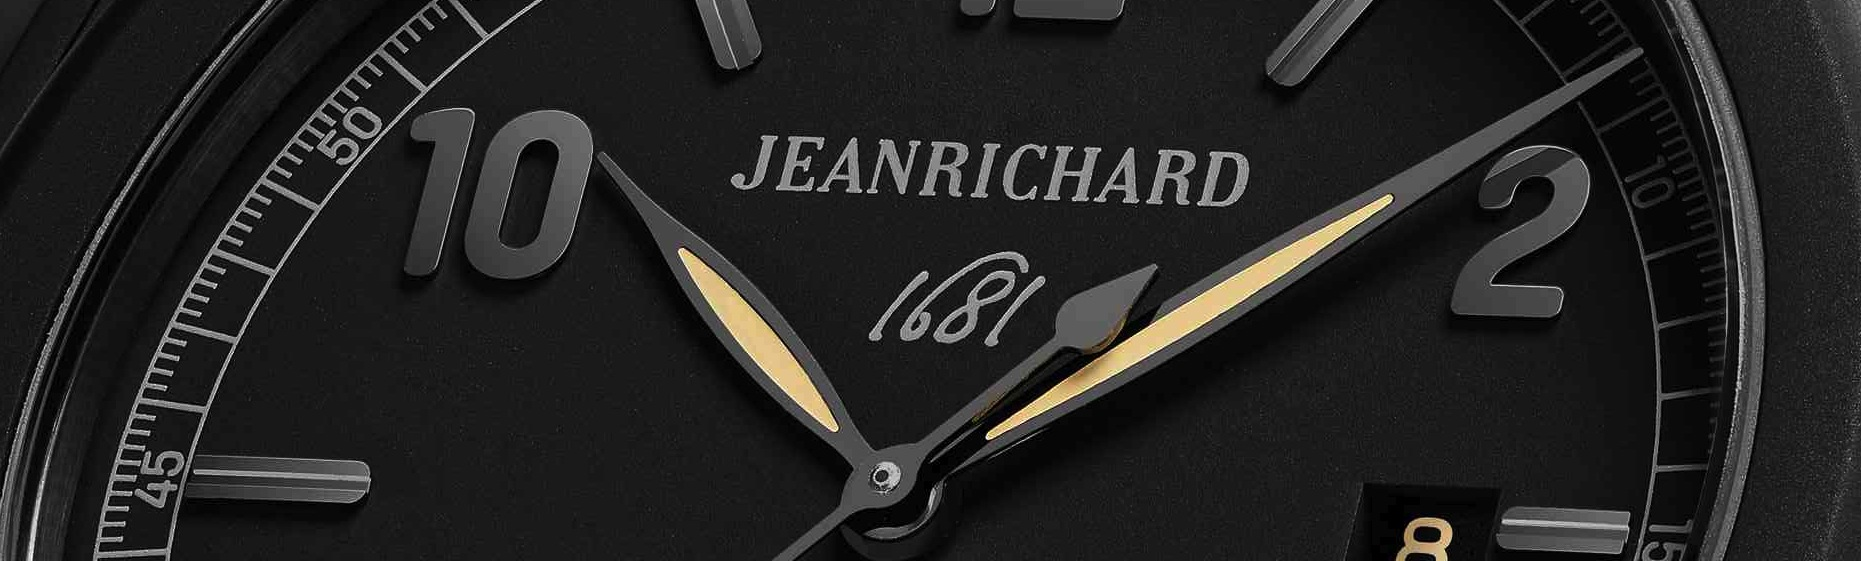 Jean Richard 1681 Black